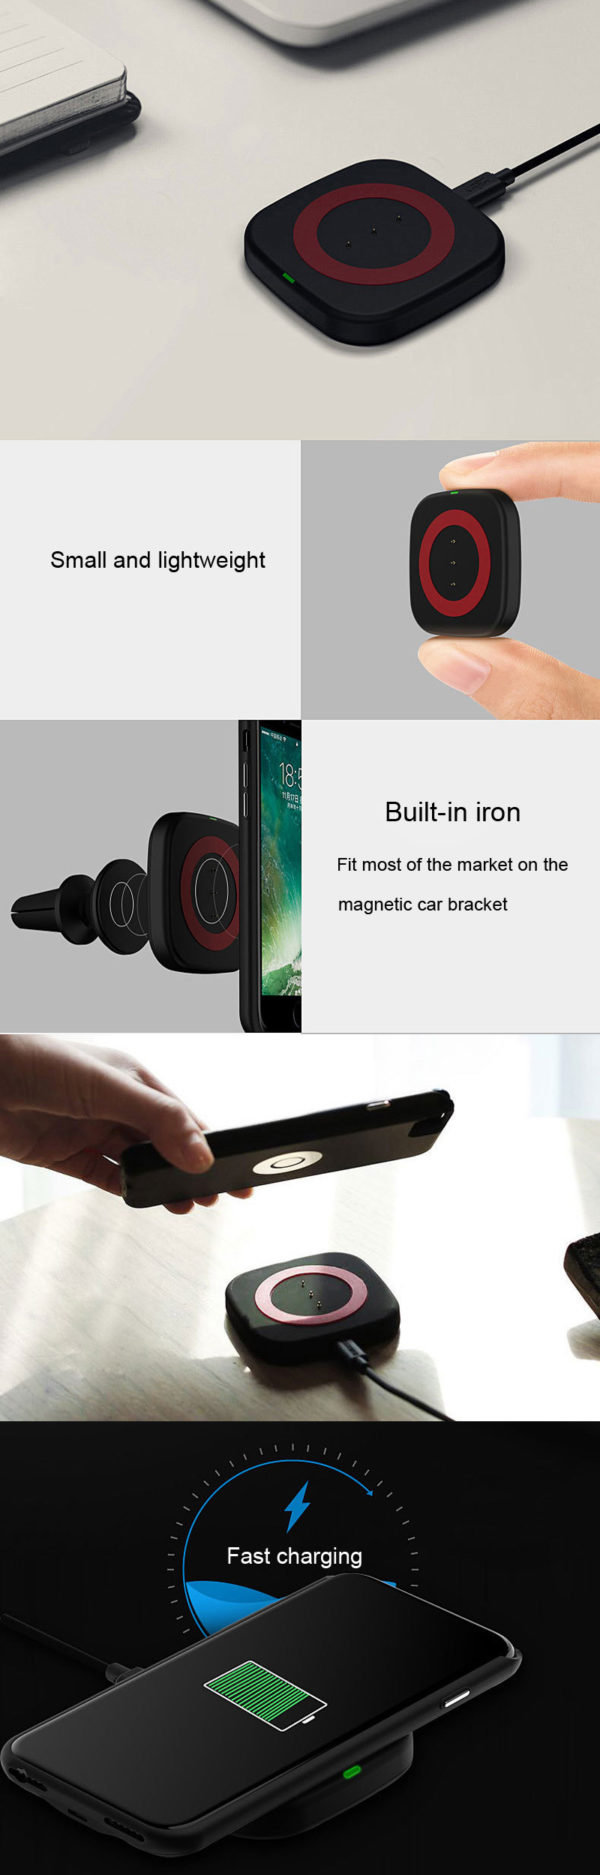 Removable Magnetic Battery